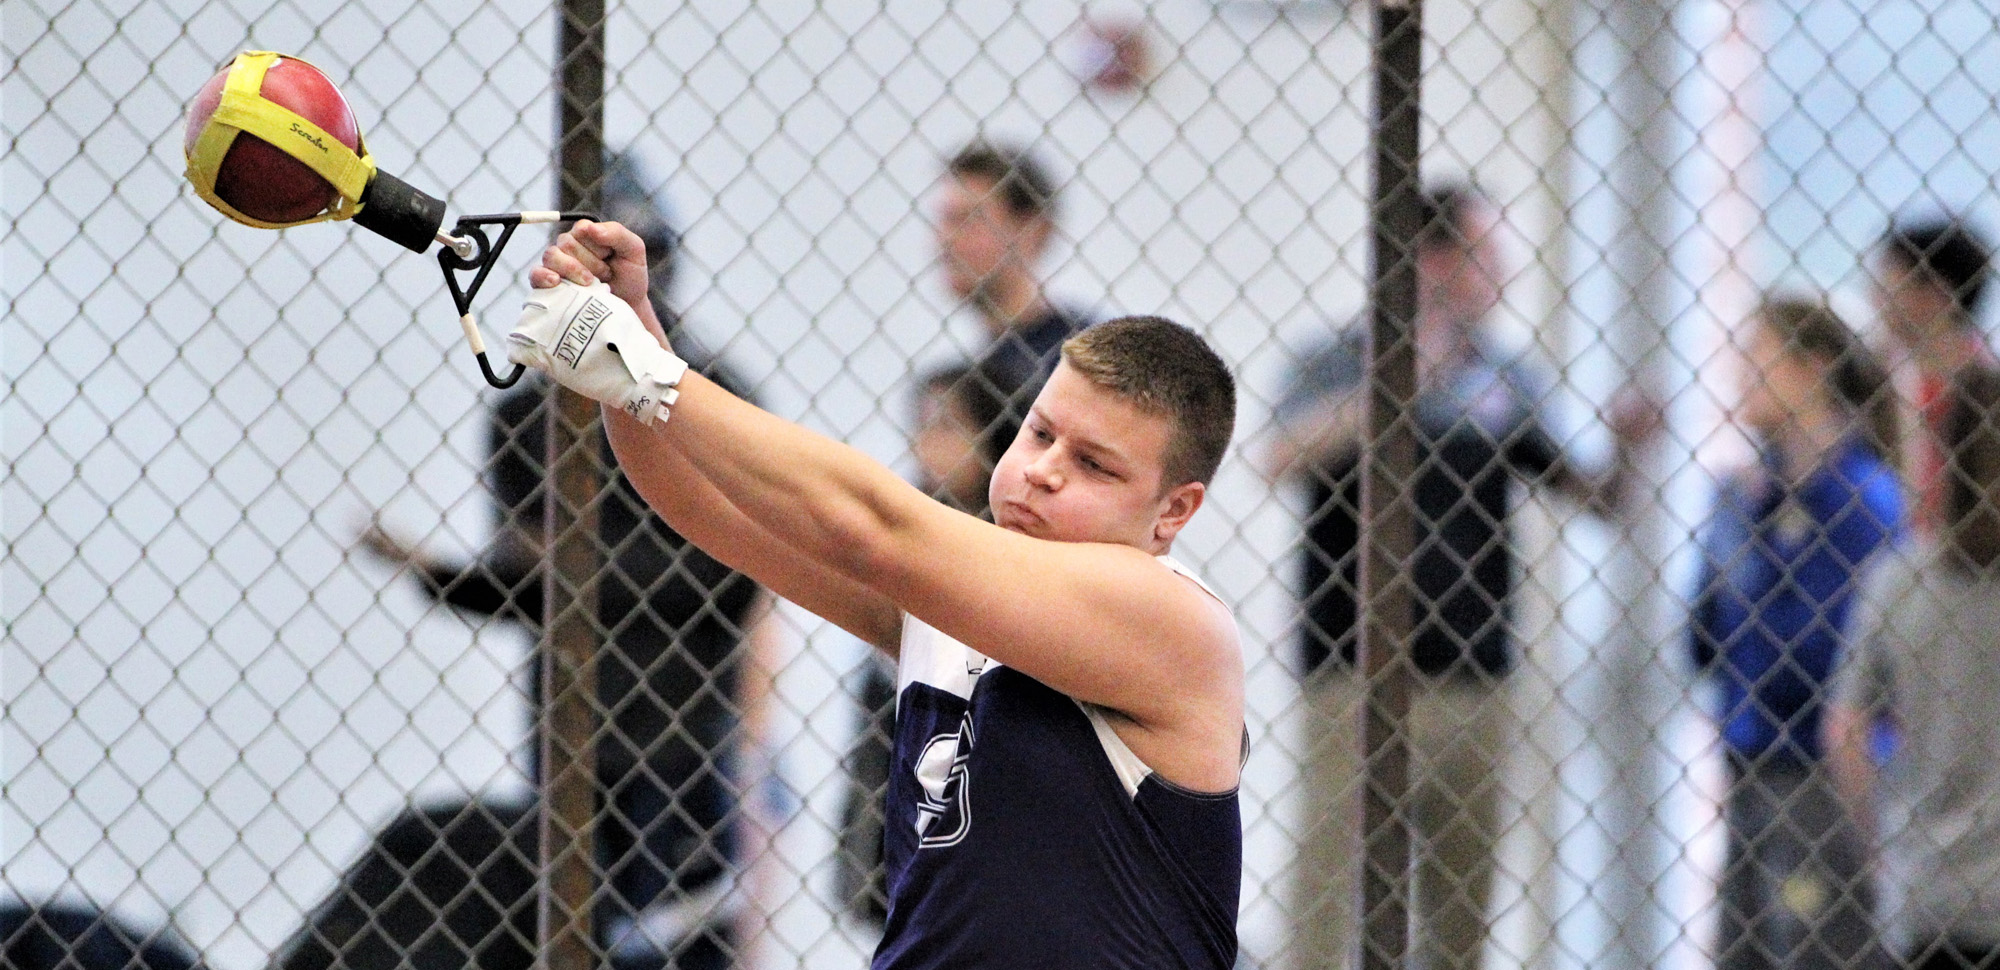 Freshman Phil Cocco recorded a pair of top-20 finishes in throwing events for the Royals on Saturday at the S.U. Challenge. © Photo by Timothy R. Dougherty / doubleeaglephotography.com